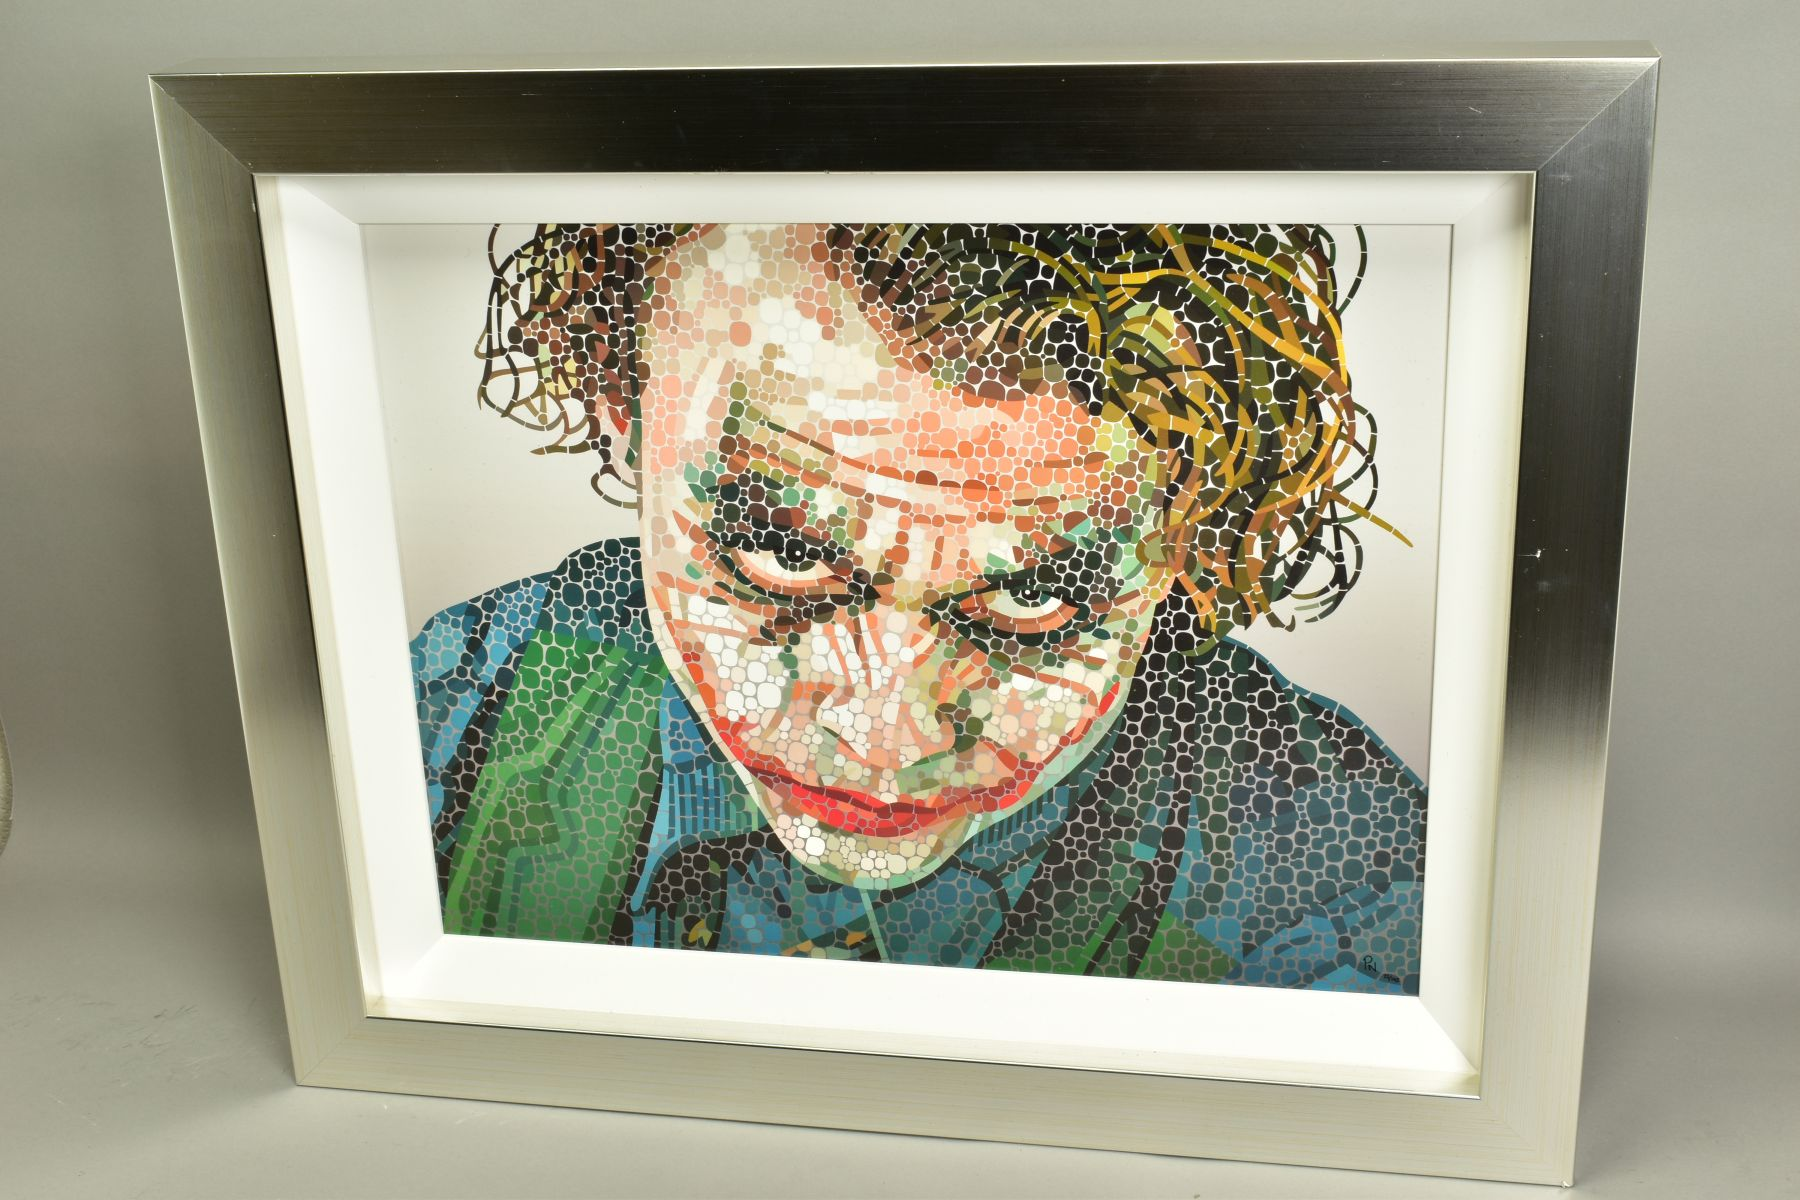 PAUL NORMANSELL (BRITISH 1978), 'Call Me Crazy', a Limited Edition print of Batman nemesis The - Image 5 of 8